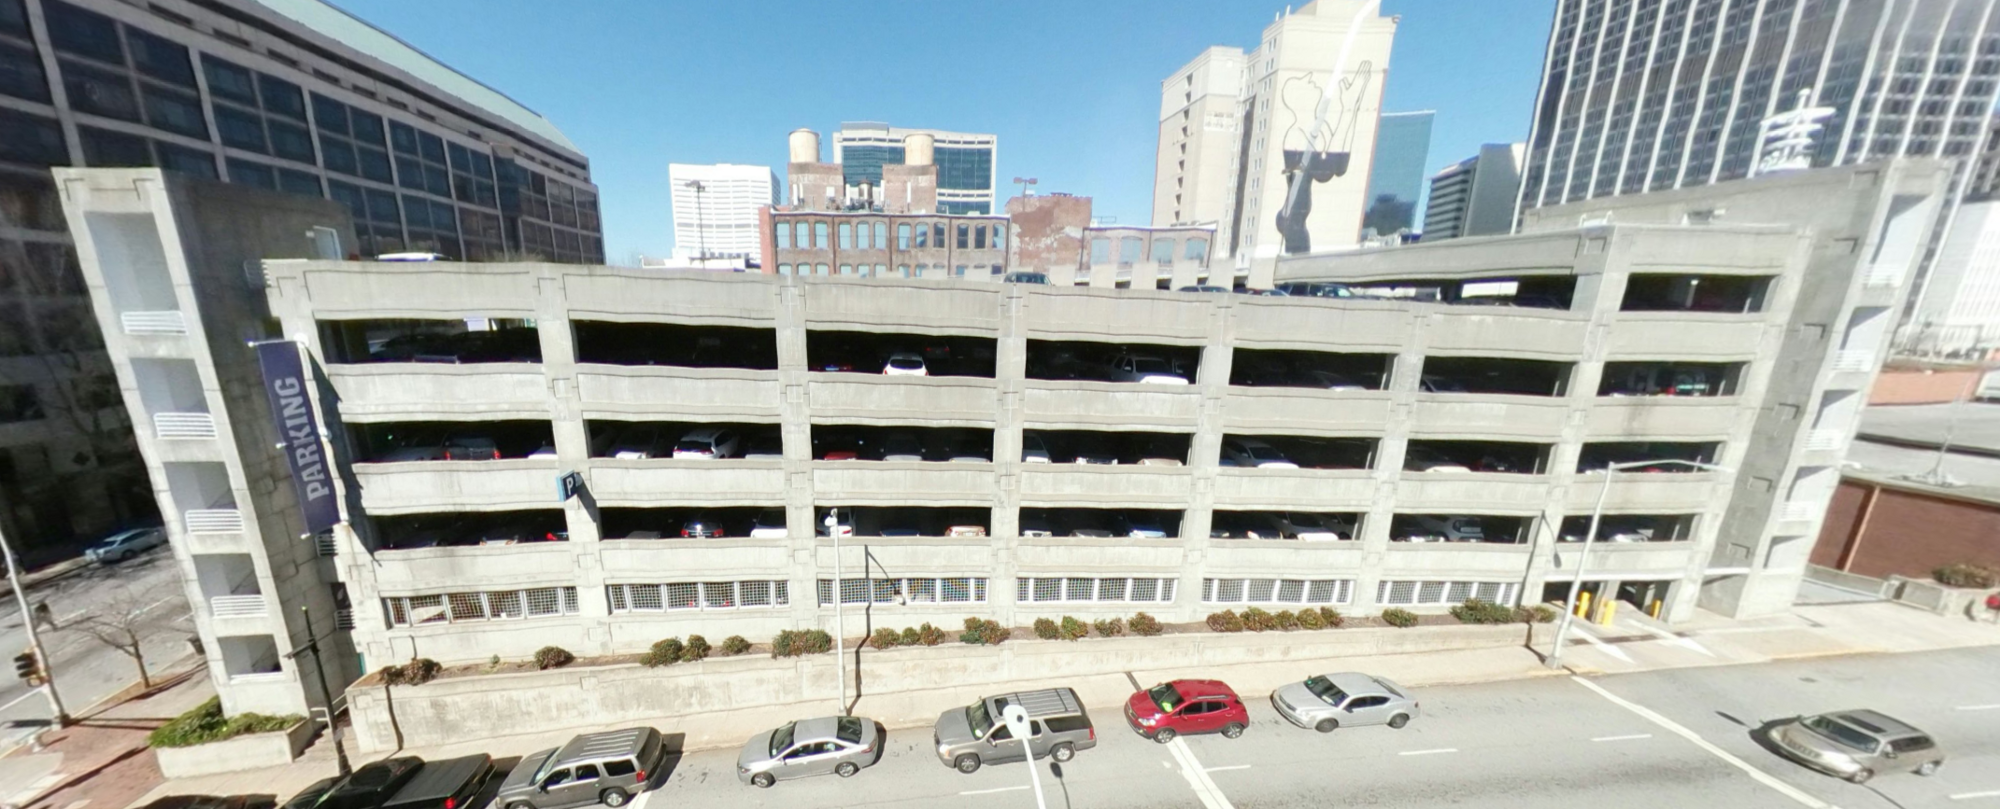 Parking deck at Underground Atlanta